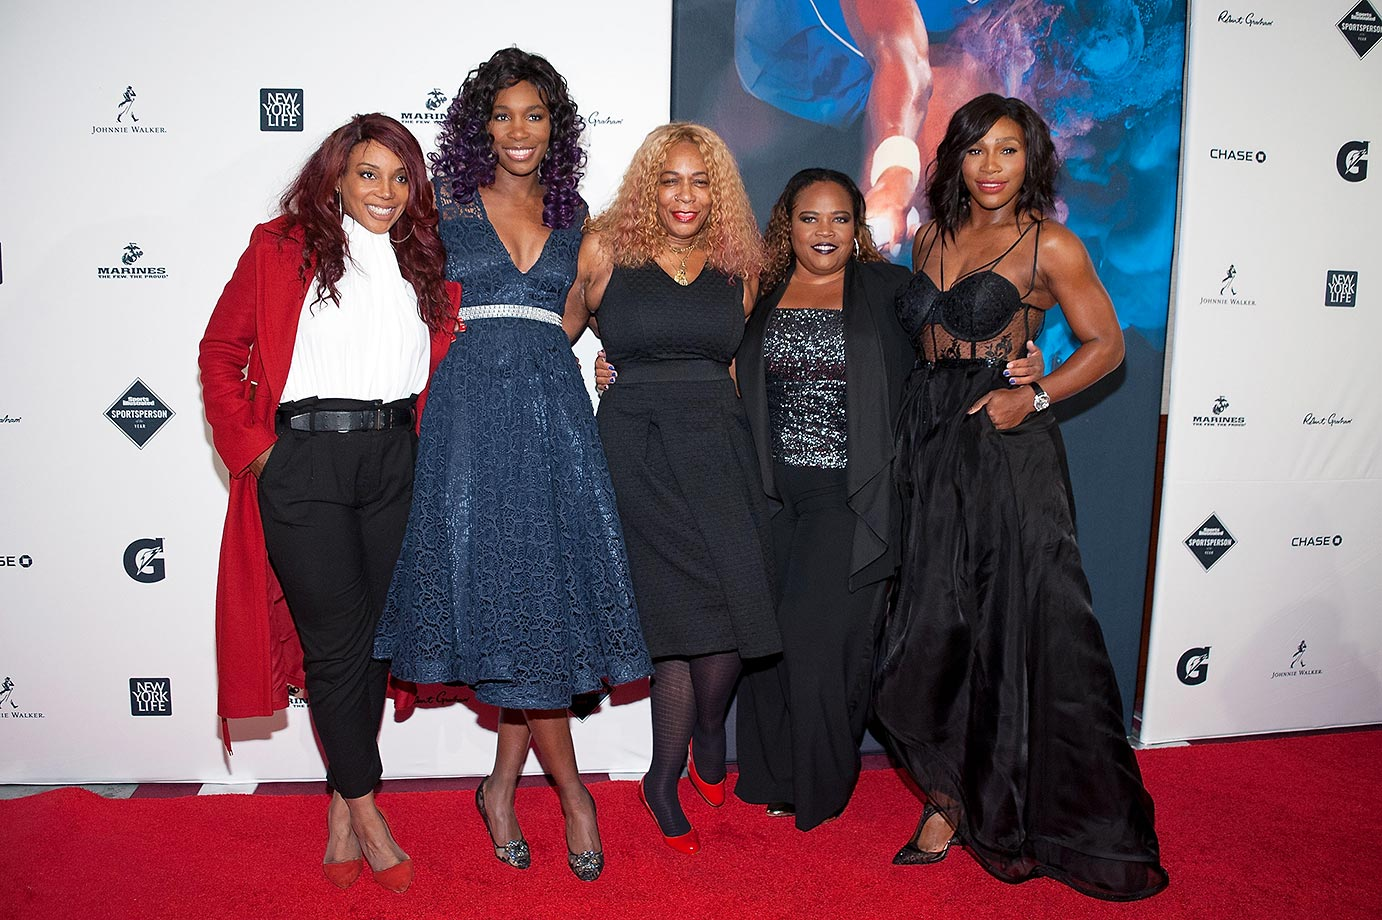 Lyndrea Price, Venus Williams, Oracene Price, Isha Price, and Serena Williams.